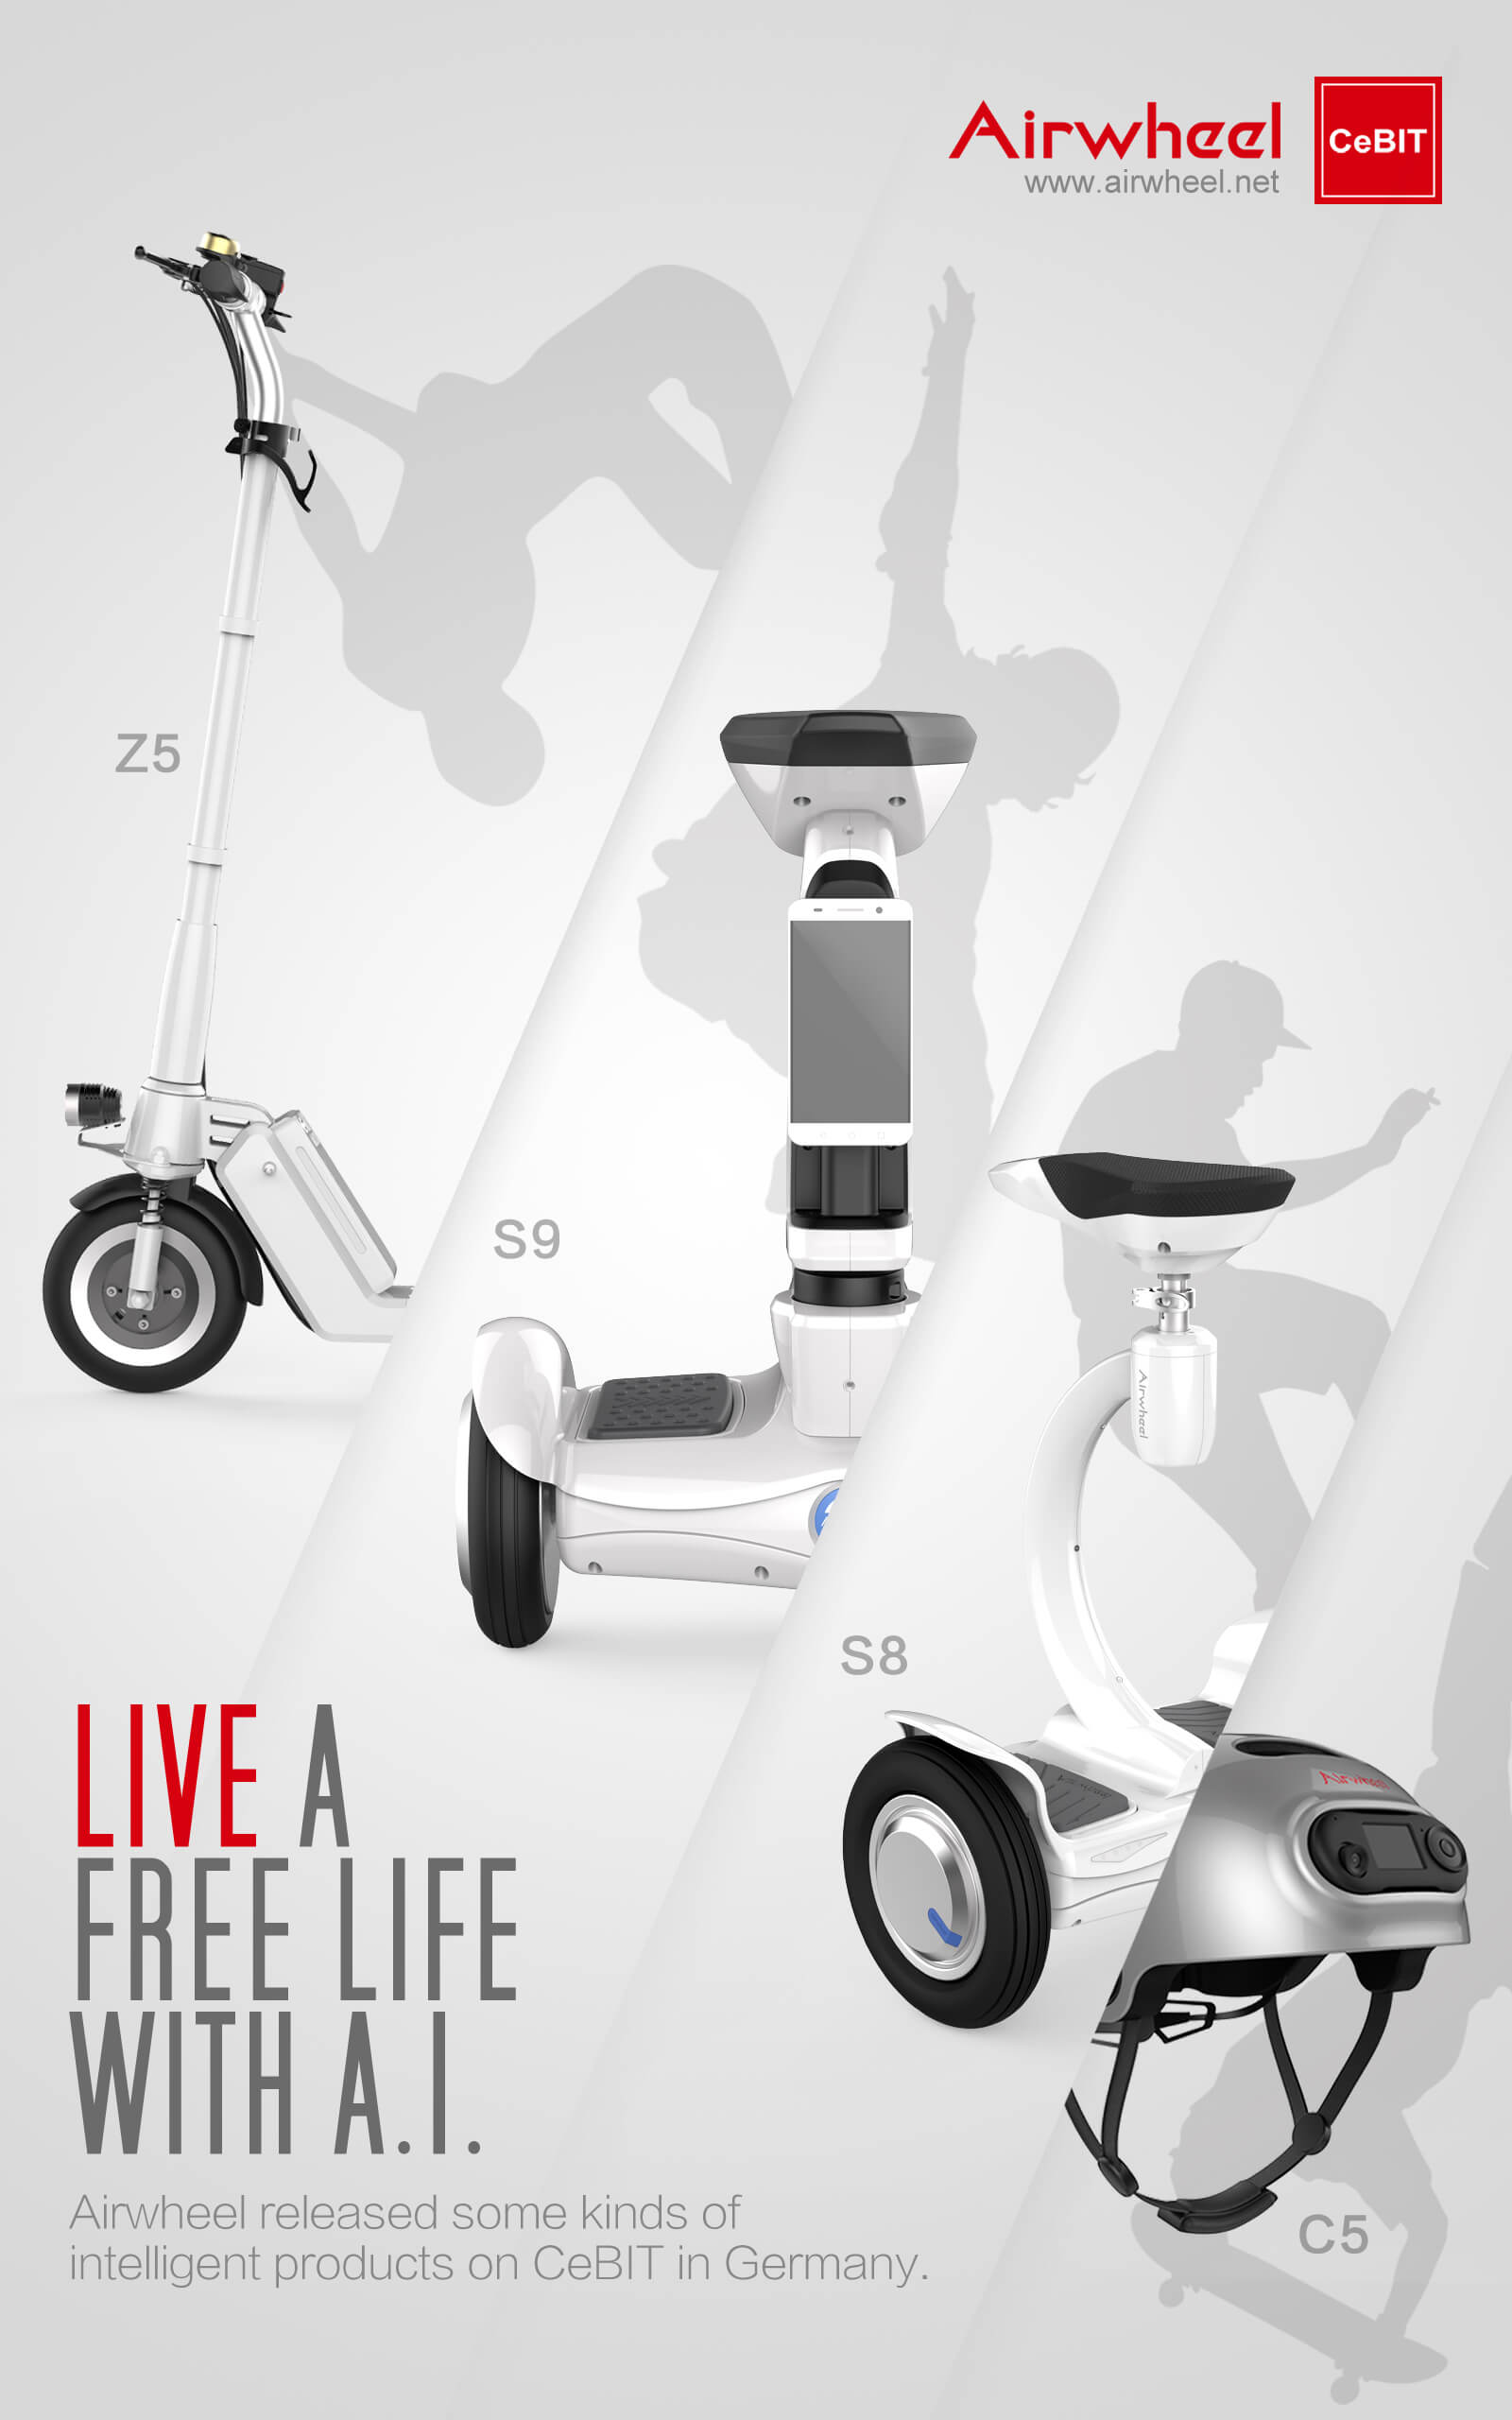 foldable electric scooter for adults S8